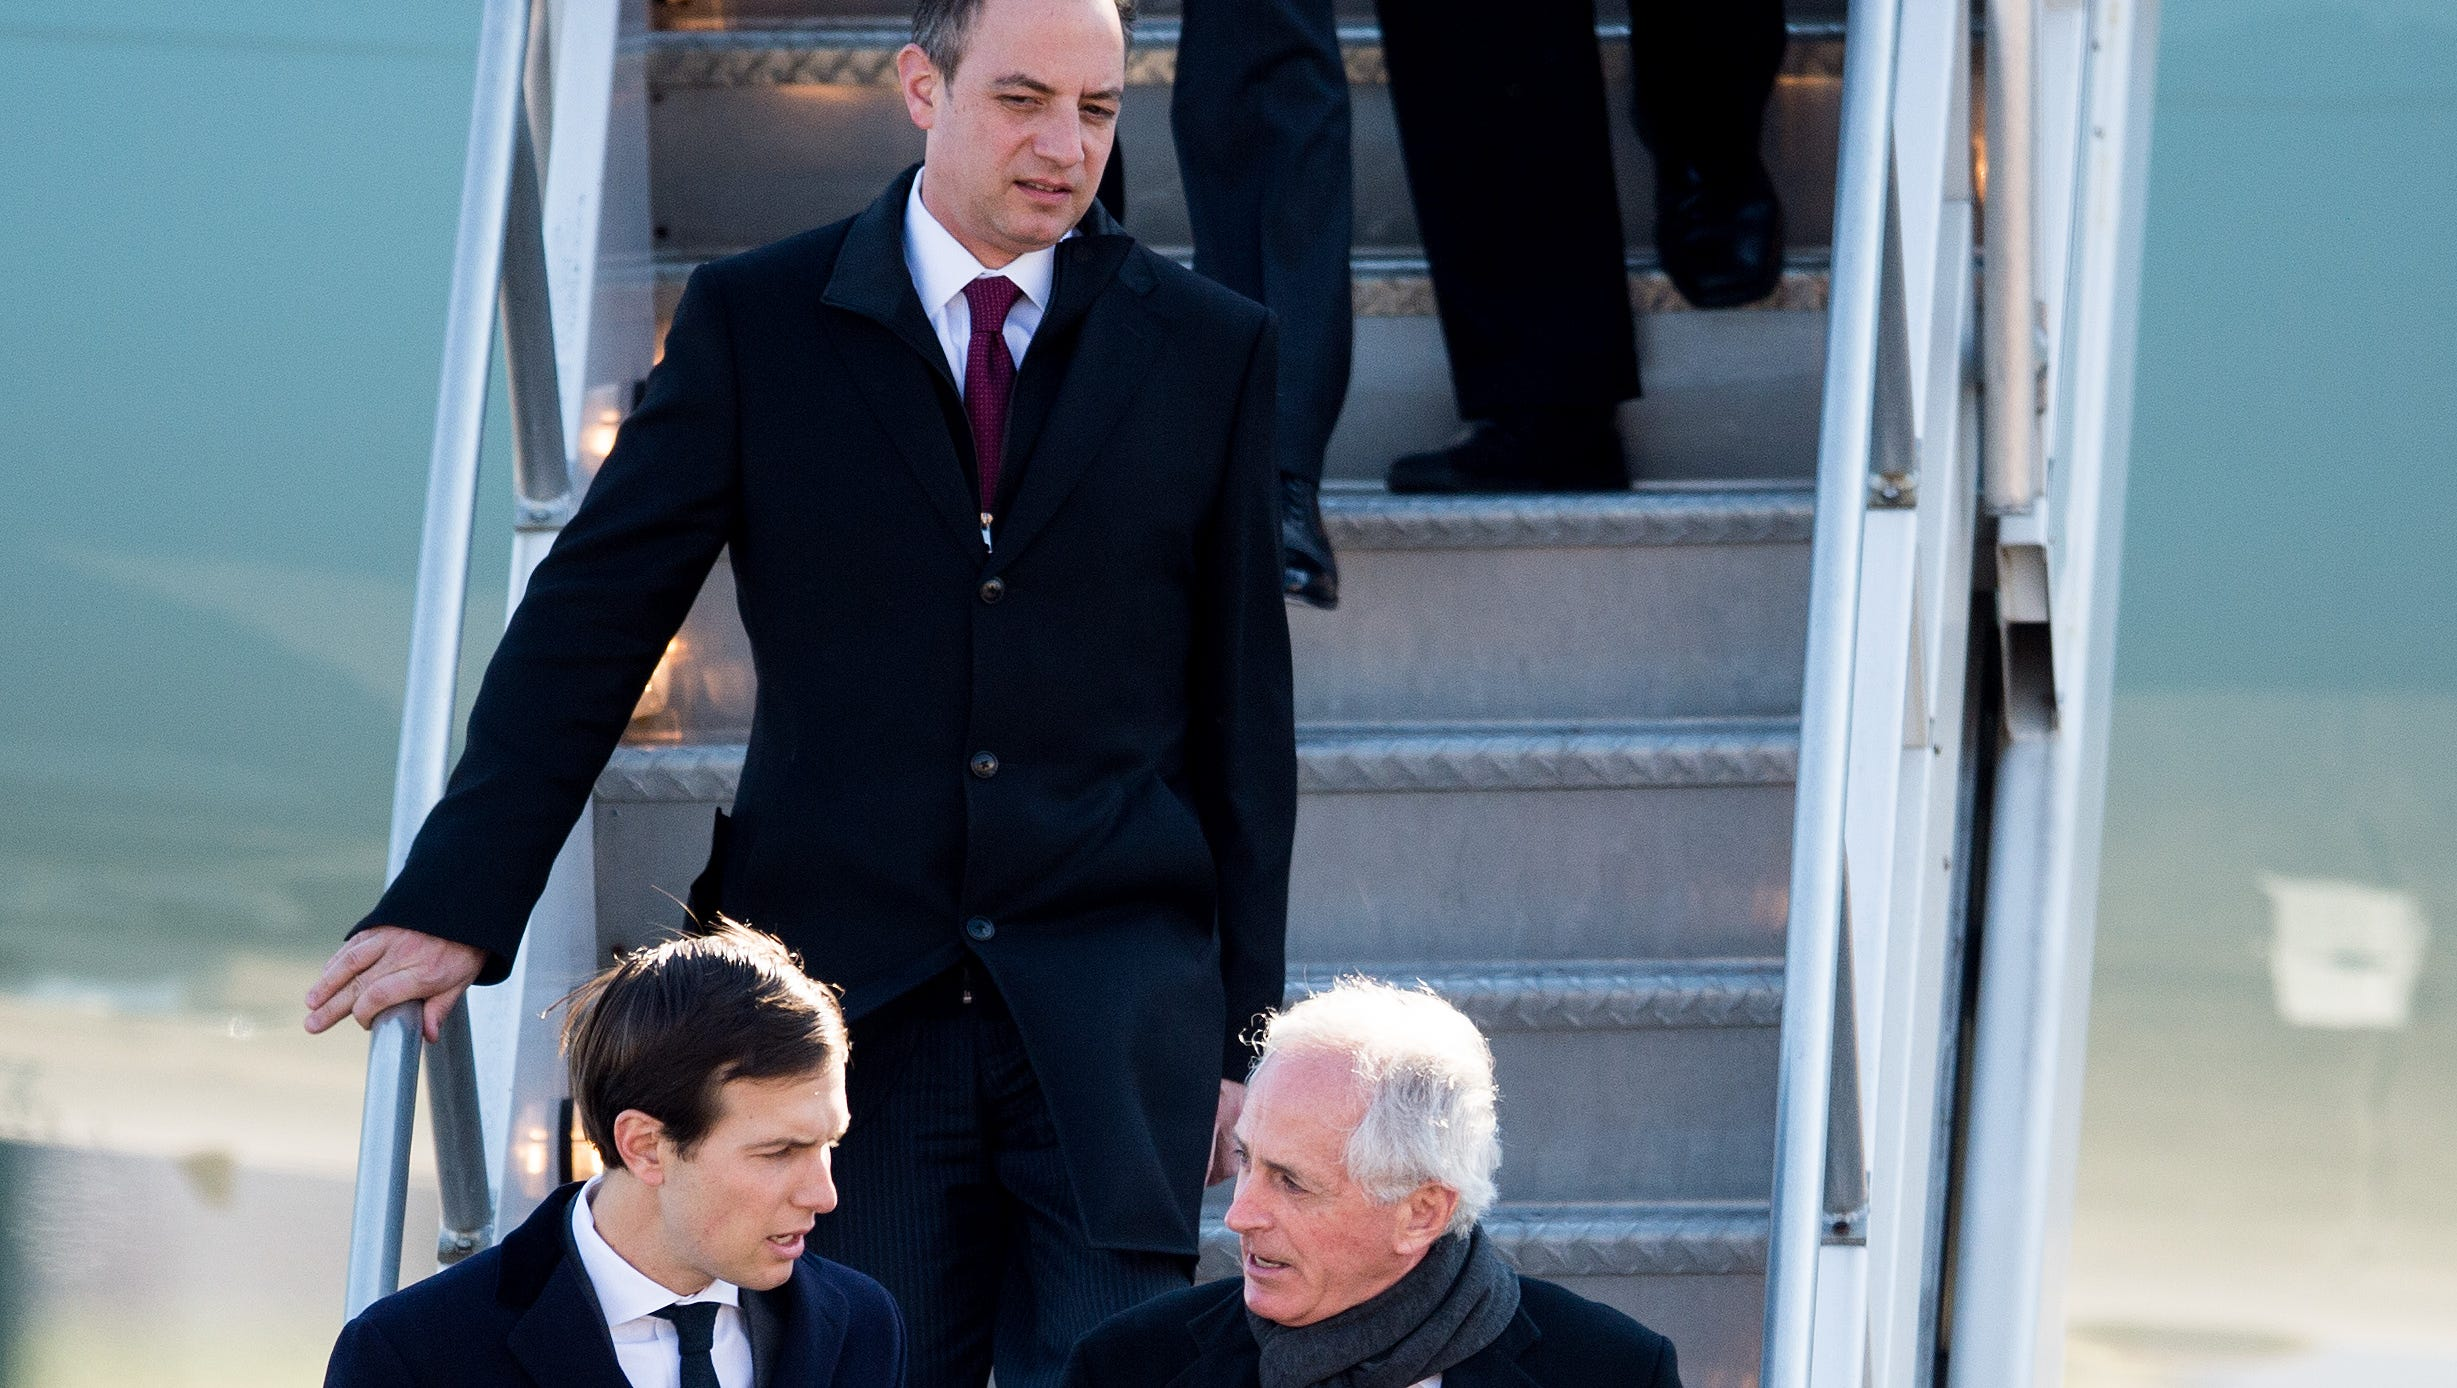 Jared Kushner Trump dismisses 'fabricated' report of son-in-law's outreach to Russia